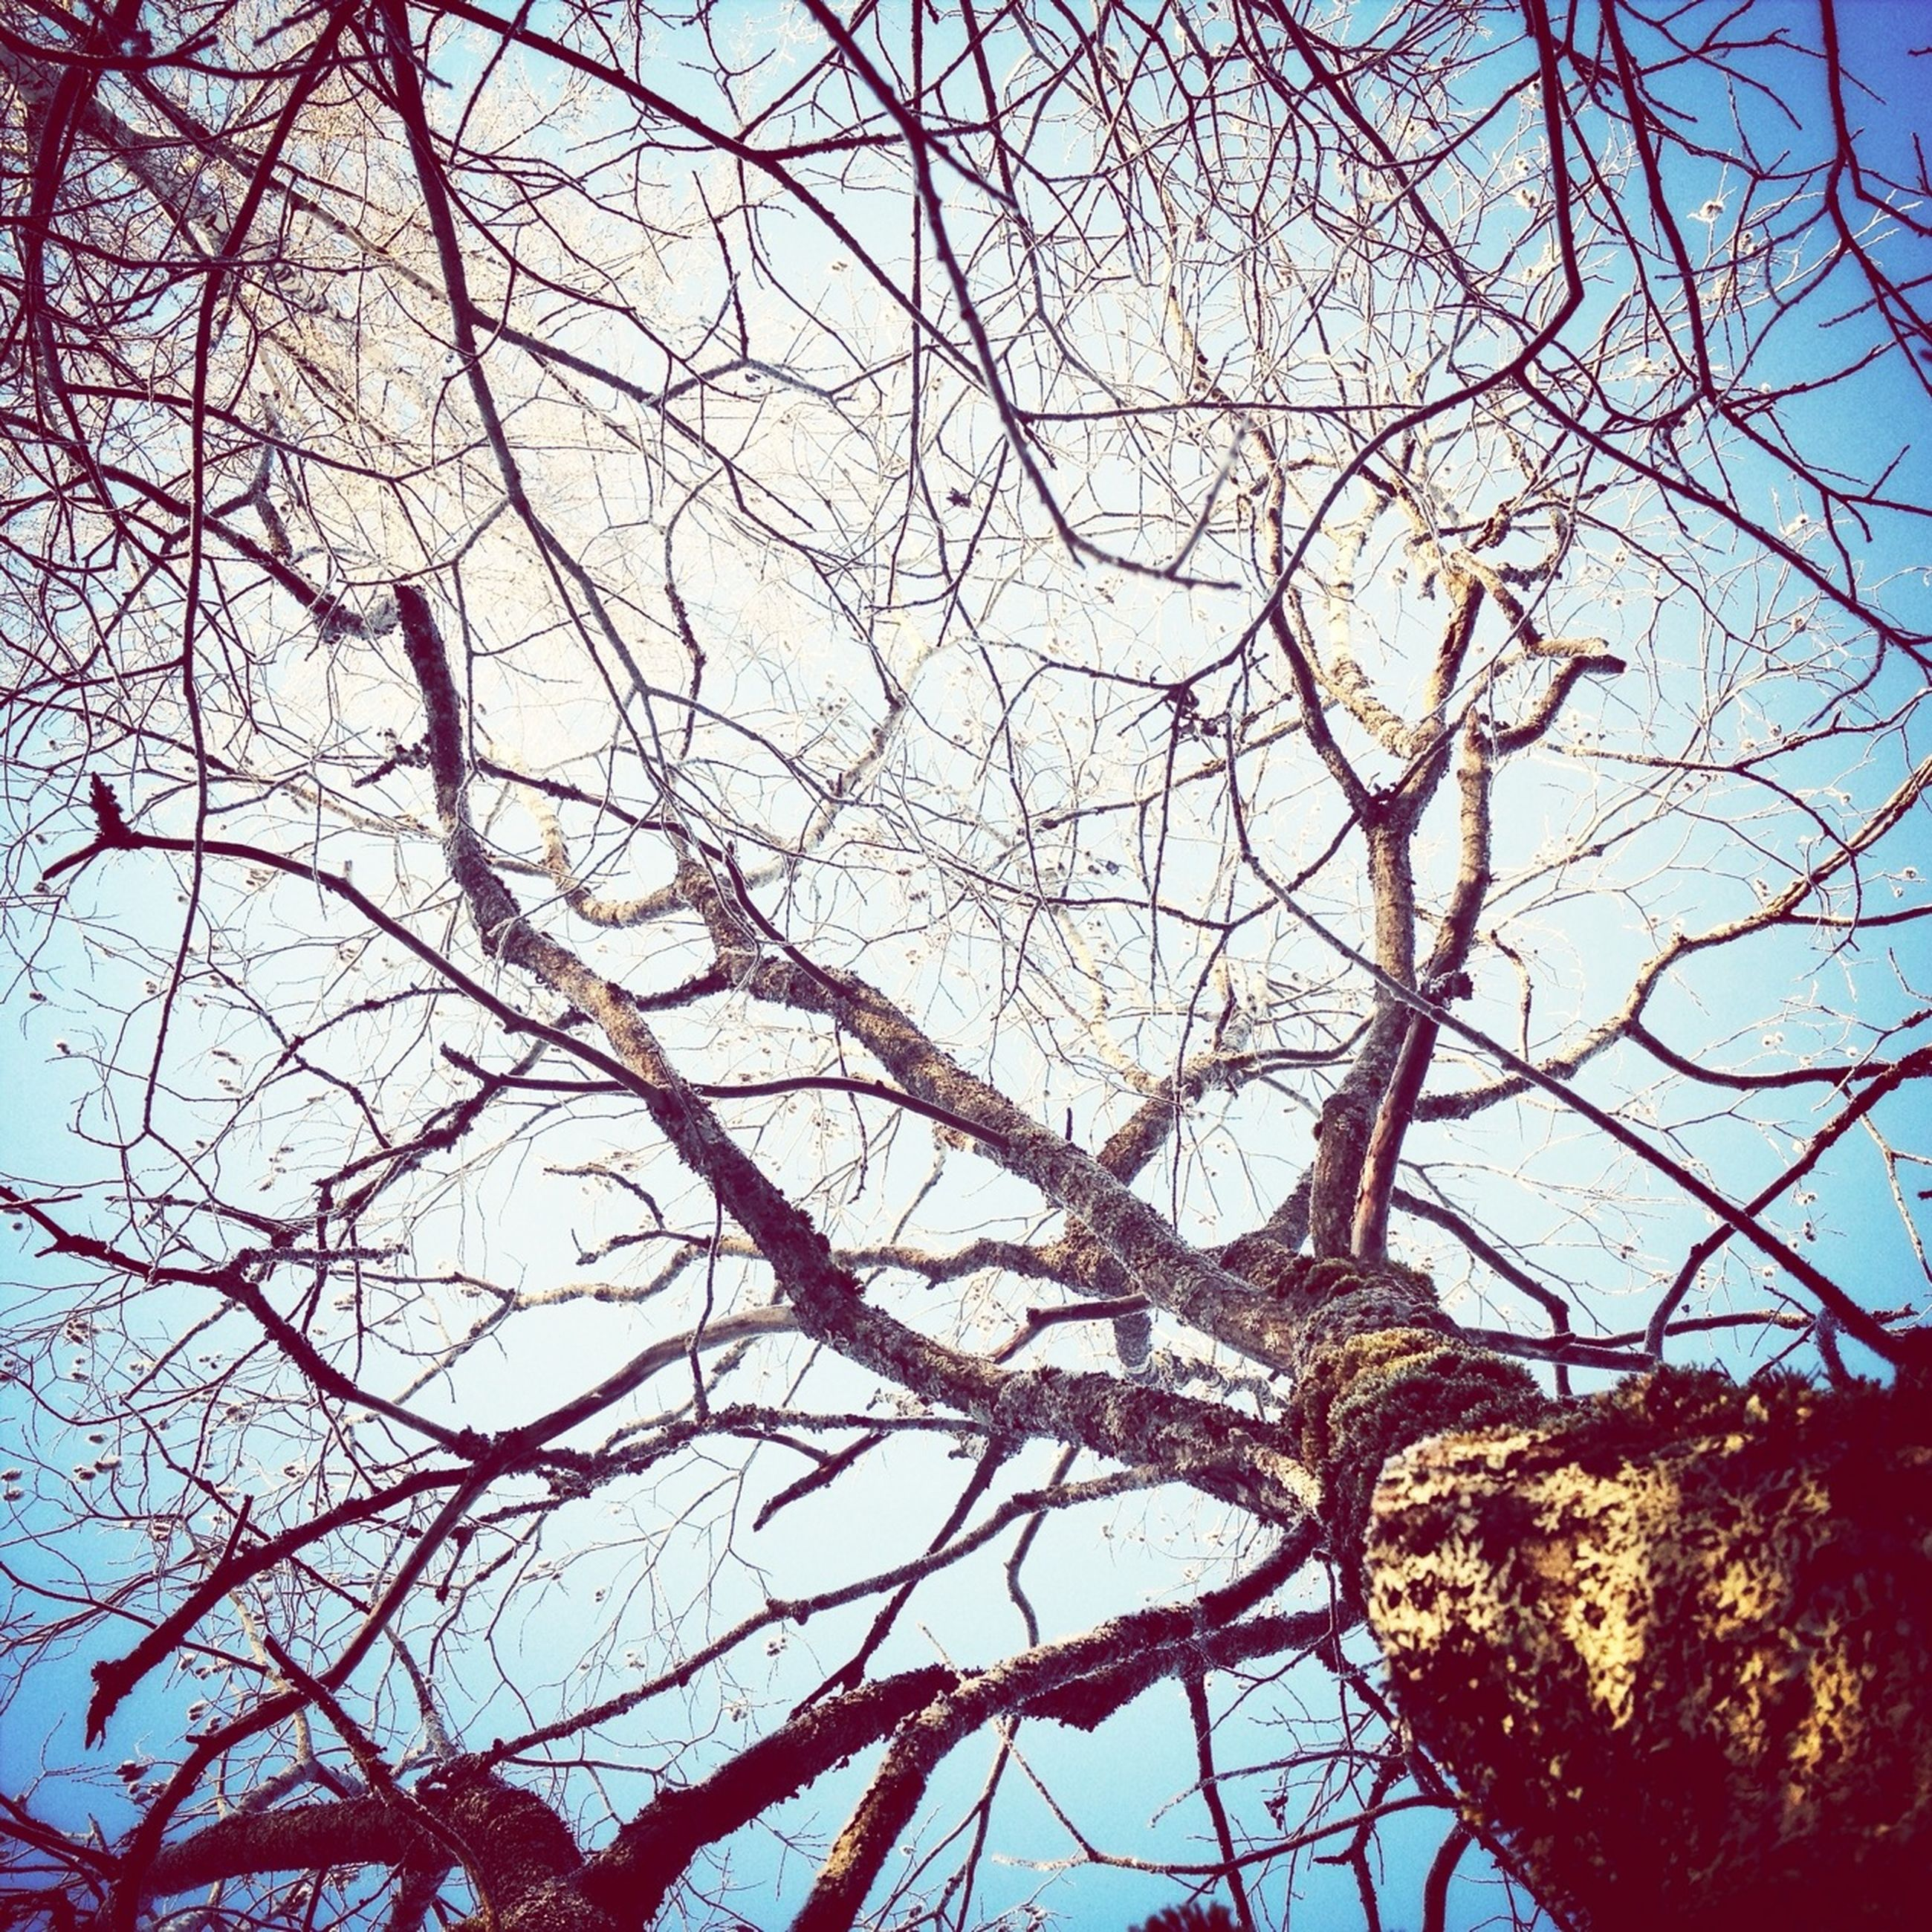 branch, bare tree, tree, low angle view, sky, nature, tranquility, clear sky, beauty in nature, silhouette, scenics, no people, outdoors, tree trunk, blue, growth, day, dusk, tranquil scene, dead plant